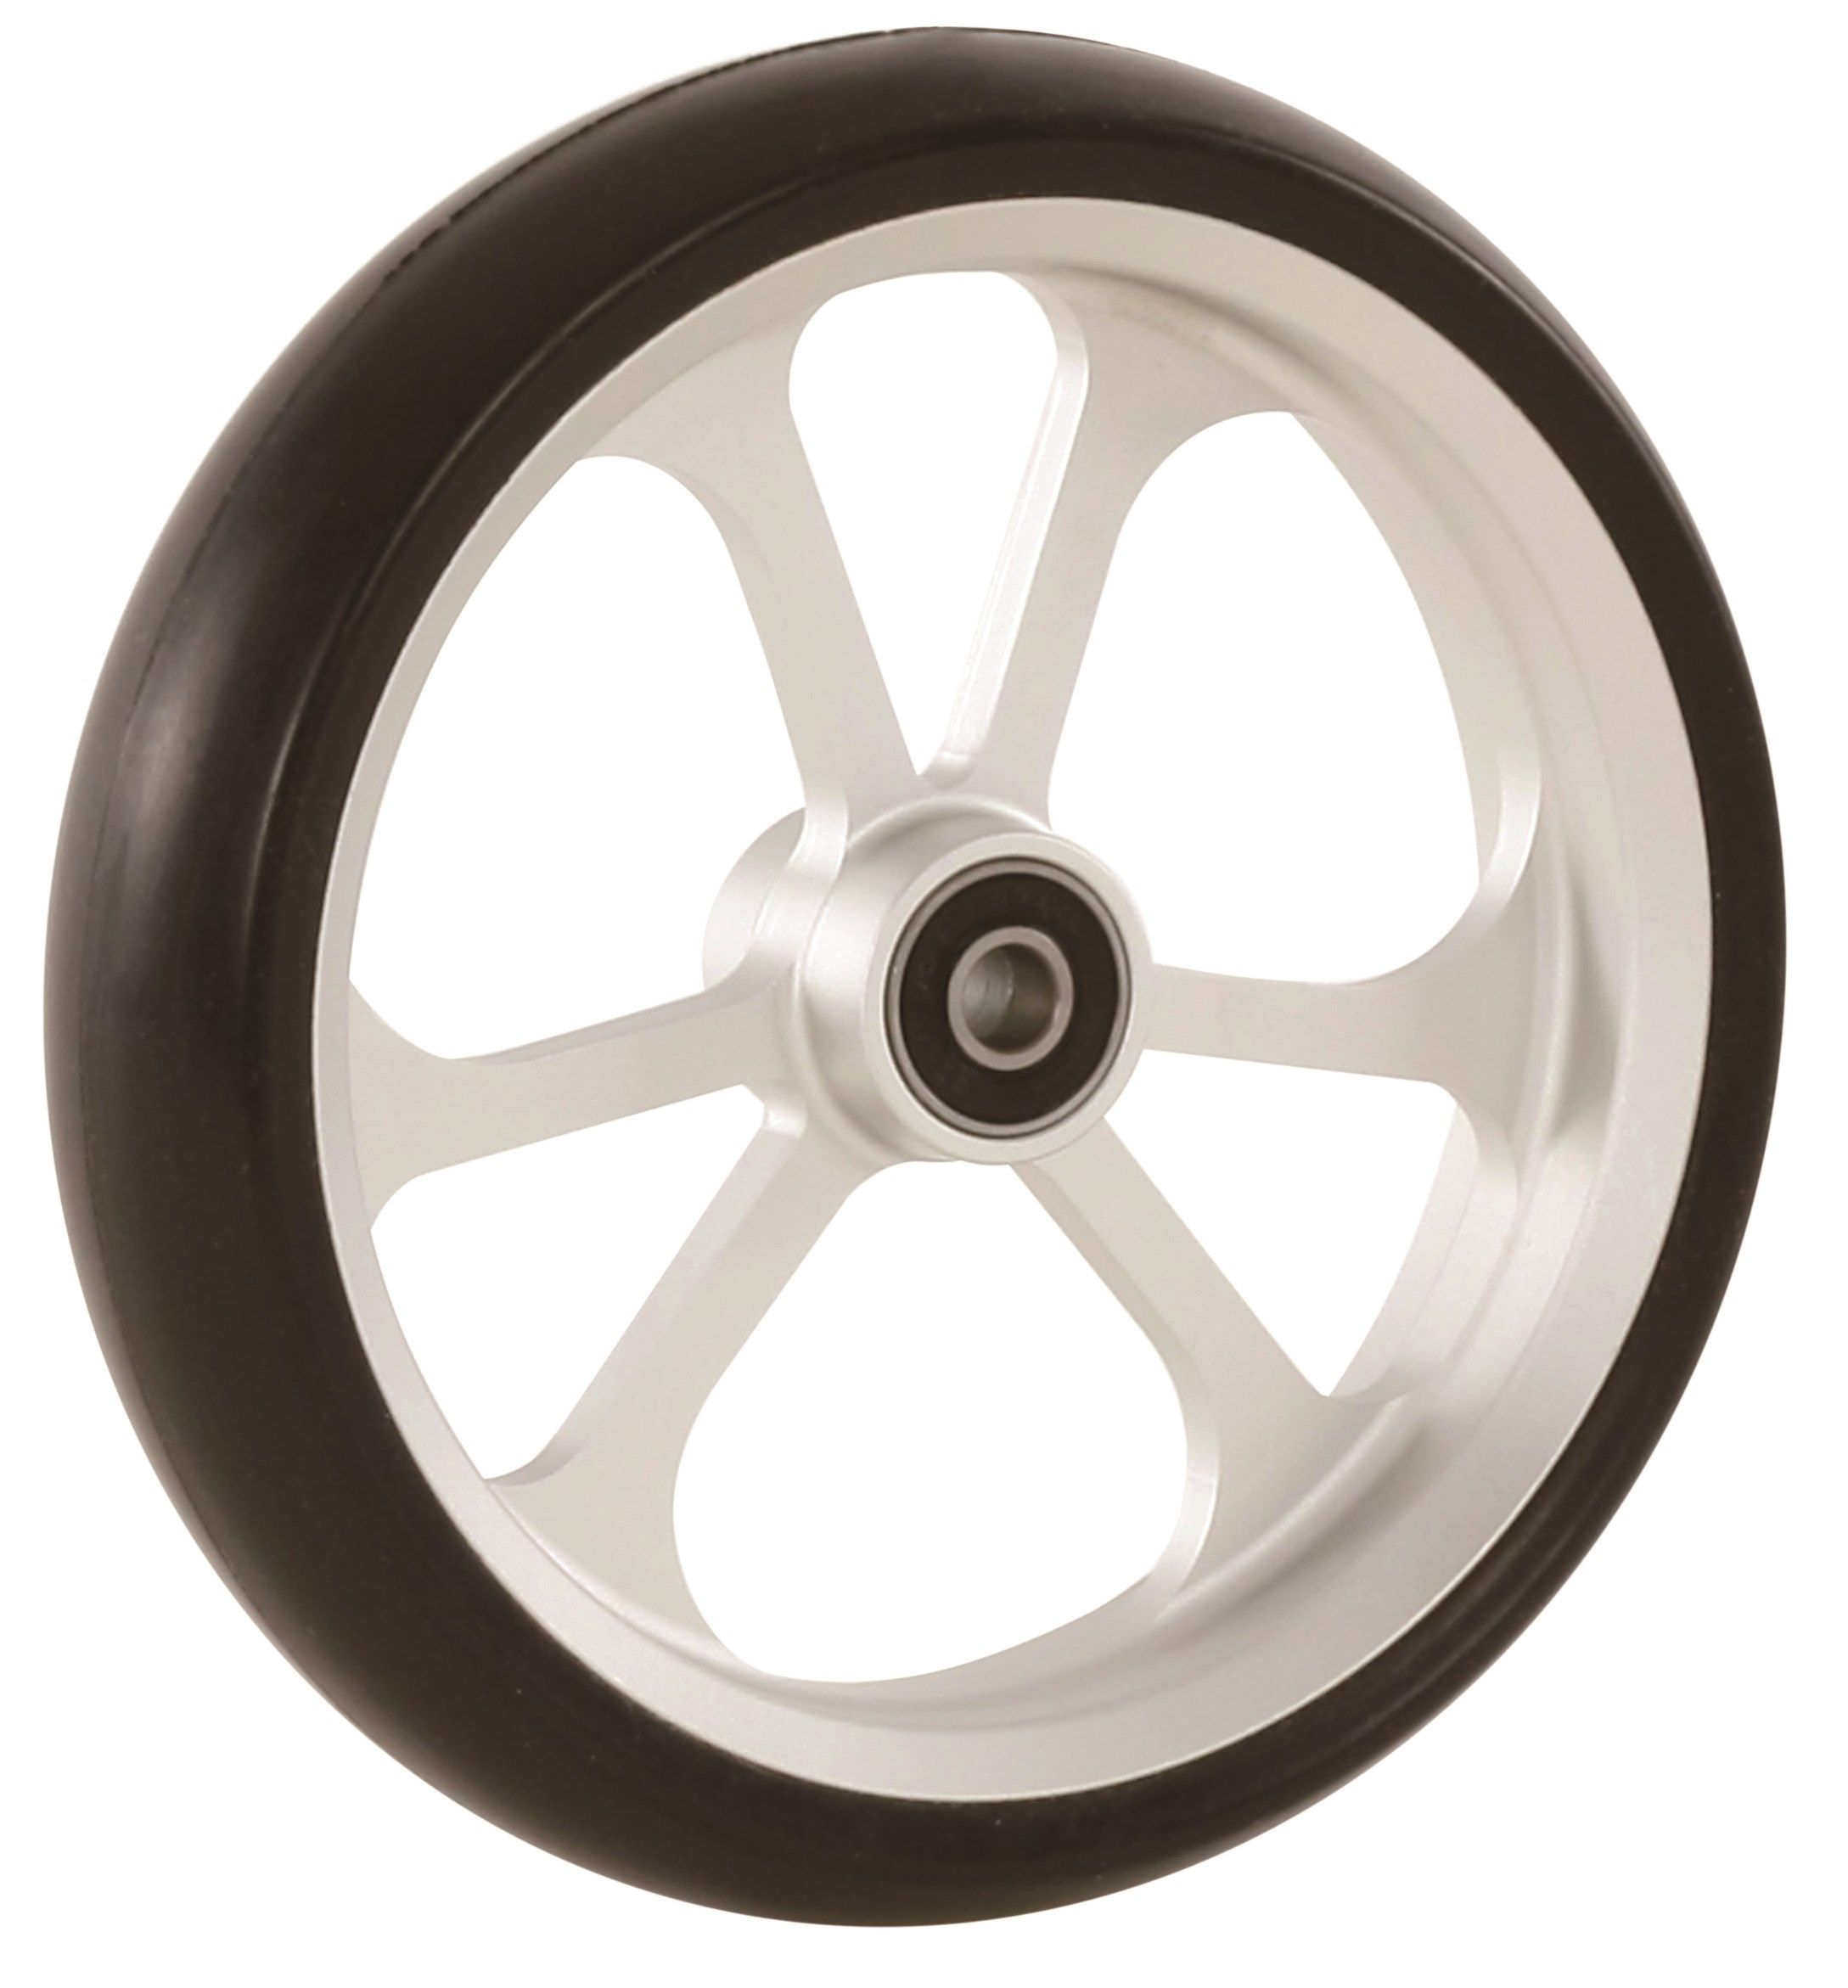 "150mm x 34mm (6"") Castor Wheel with ALUCore Hub, Black Rubber Tyre"